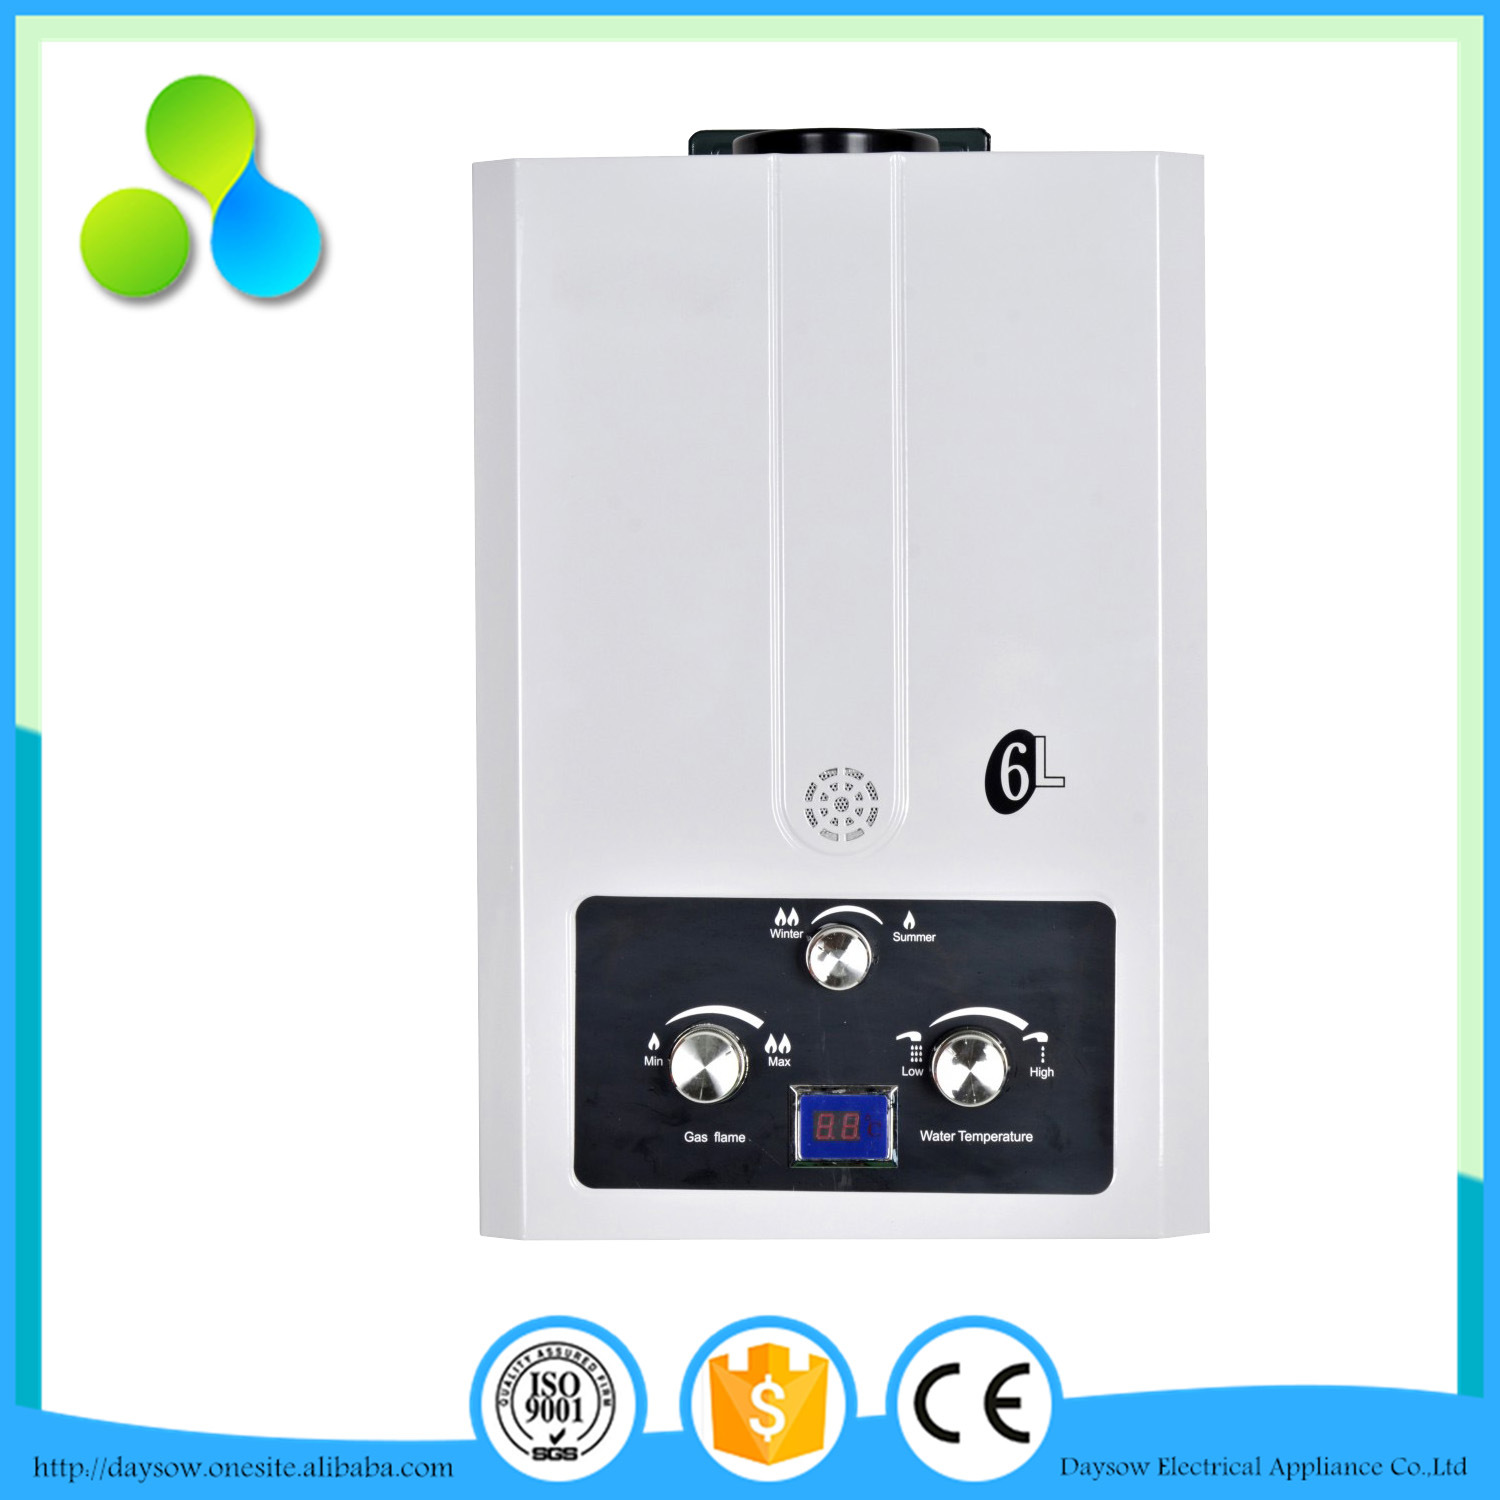 Portable Gas Water Heater, Natural Outdoor Camping Gas Water Heater